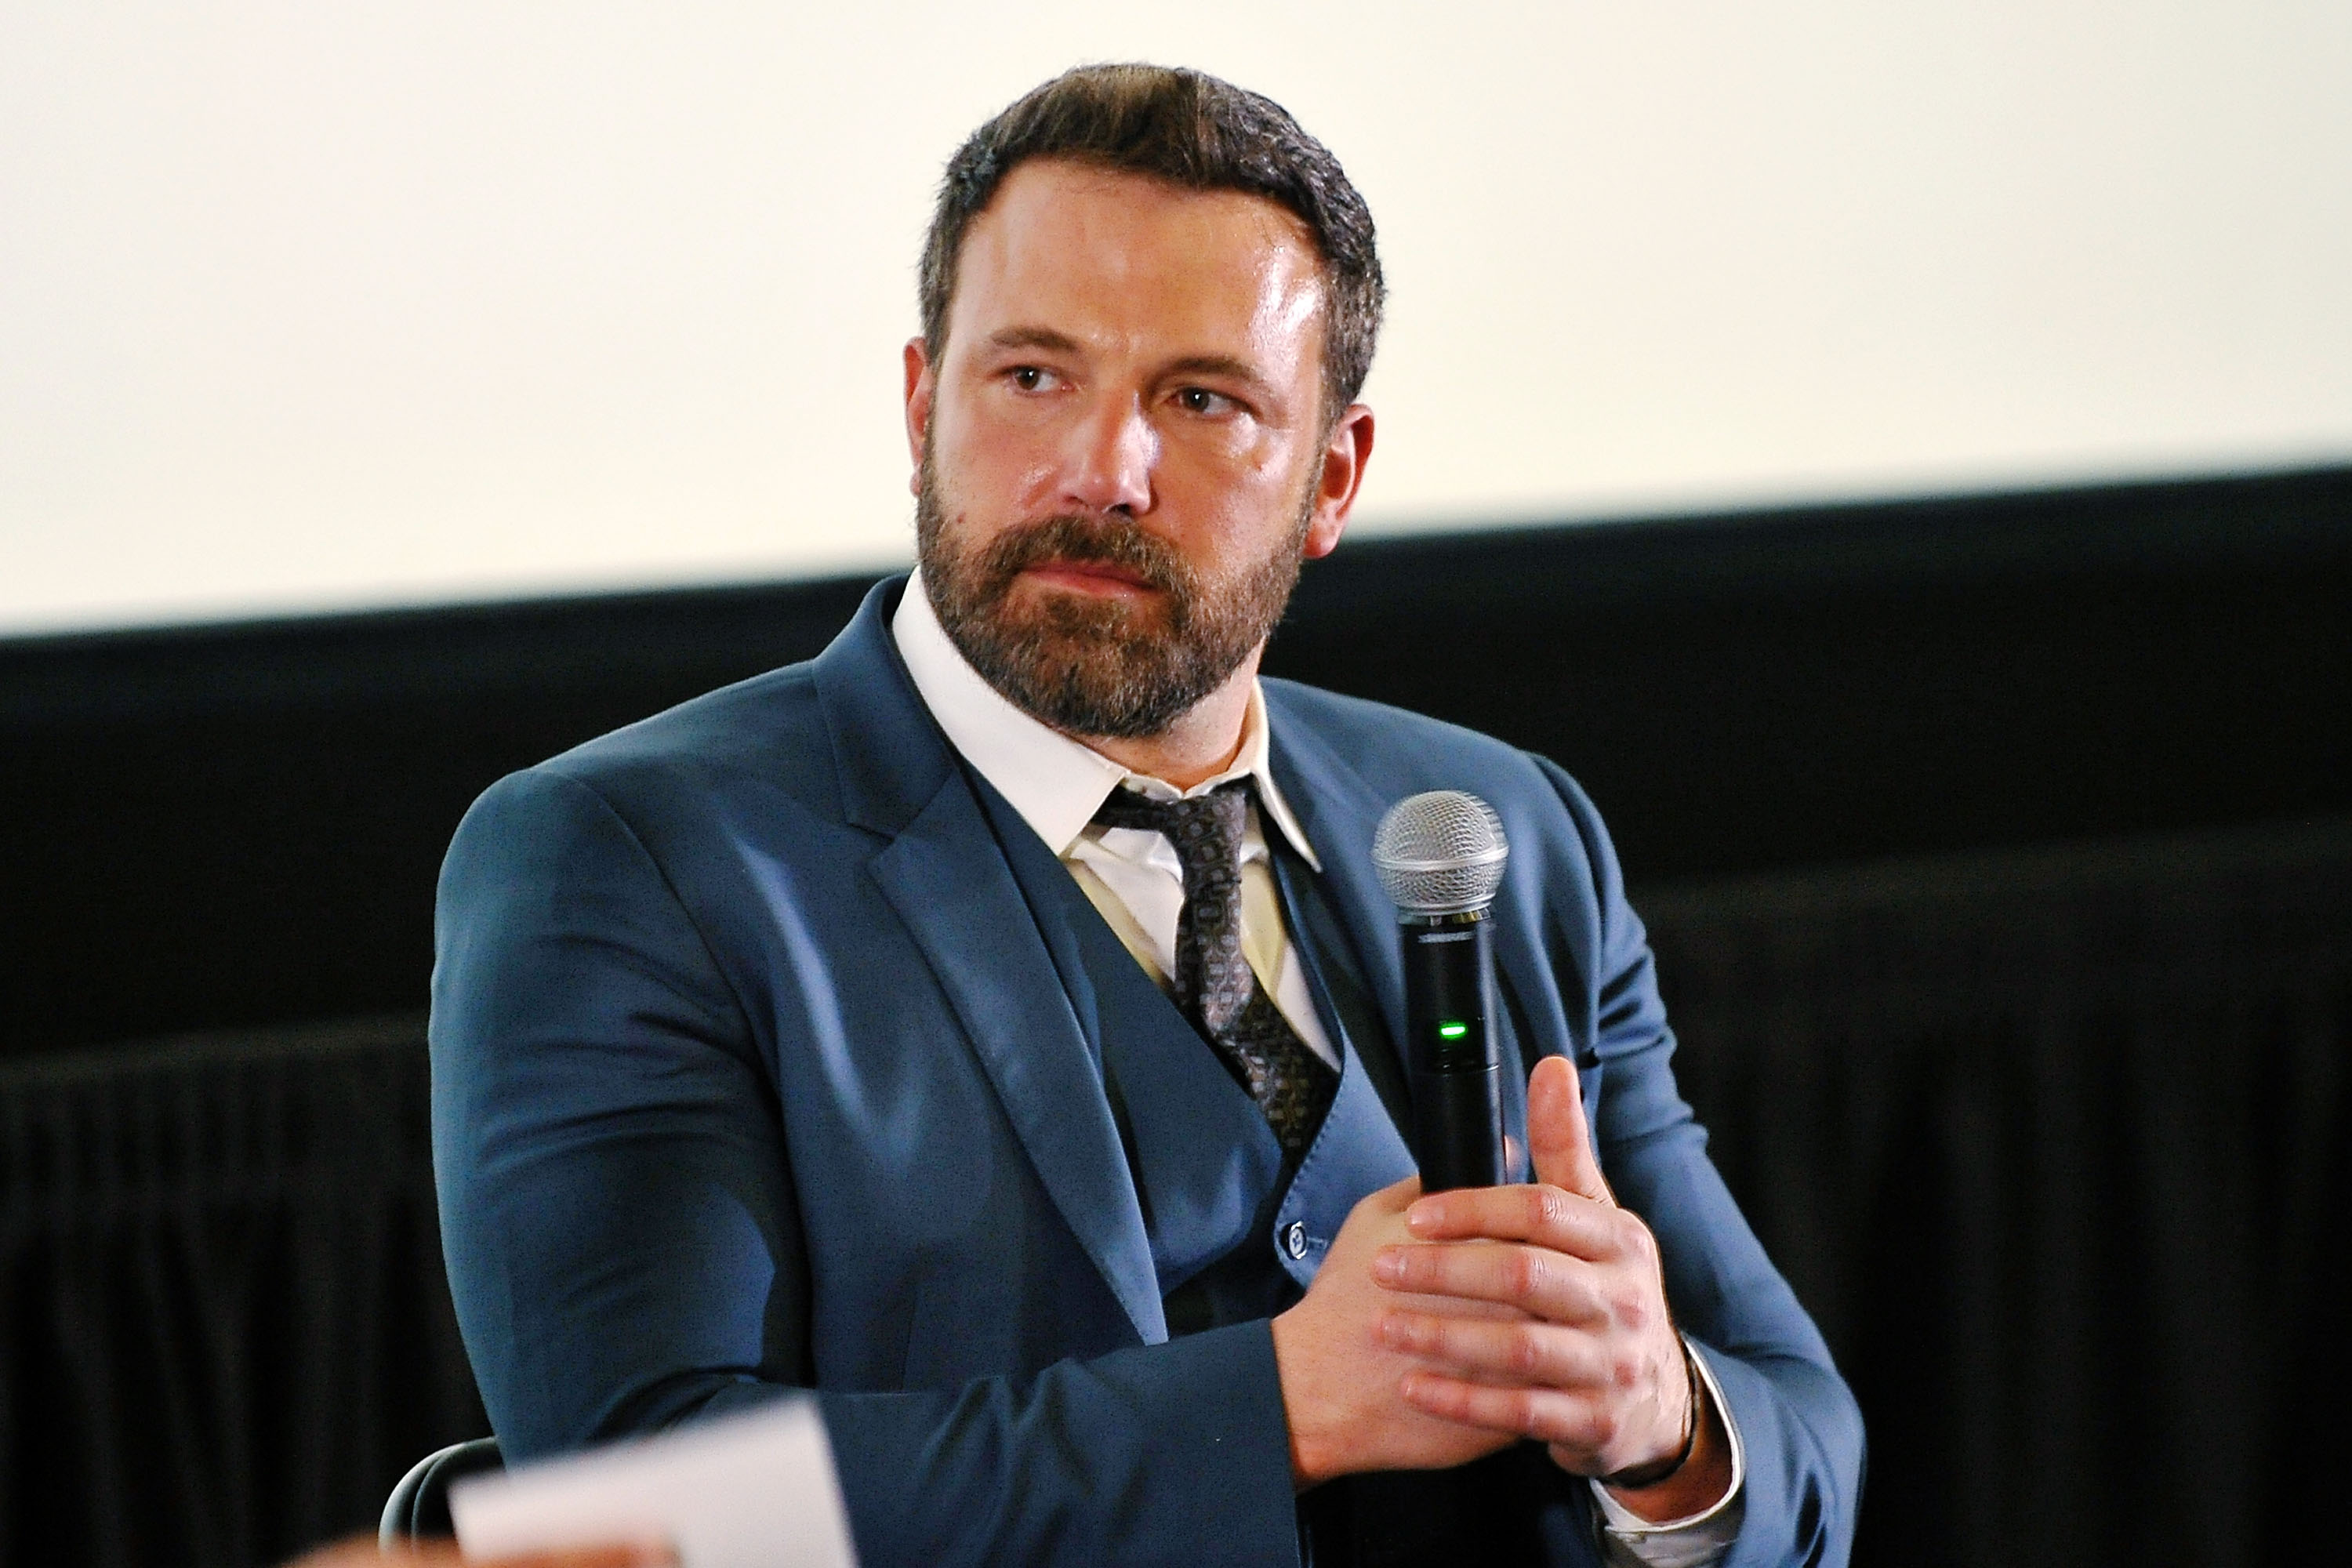 Ben Affleck attends 1st Annual AutFest International Film Festival at AMC Orange 30 on April 23, 2017 in Orange, California.